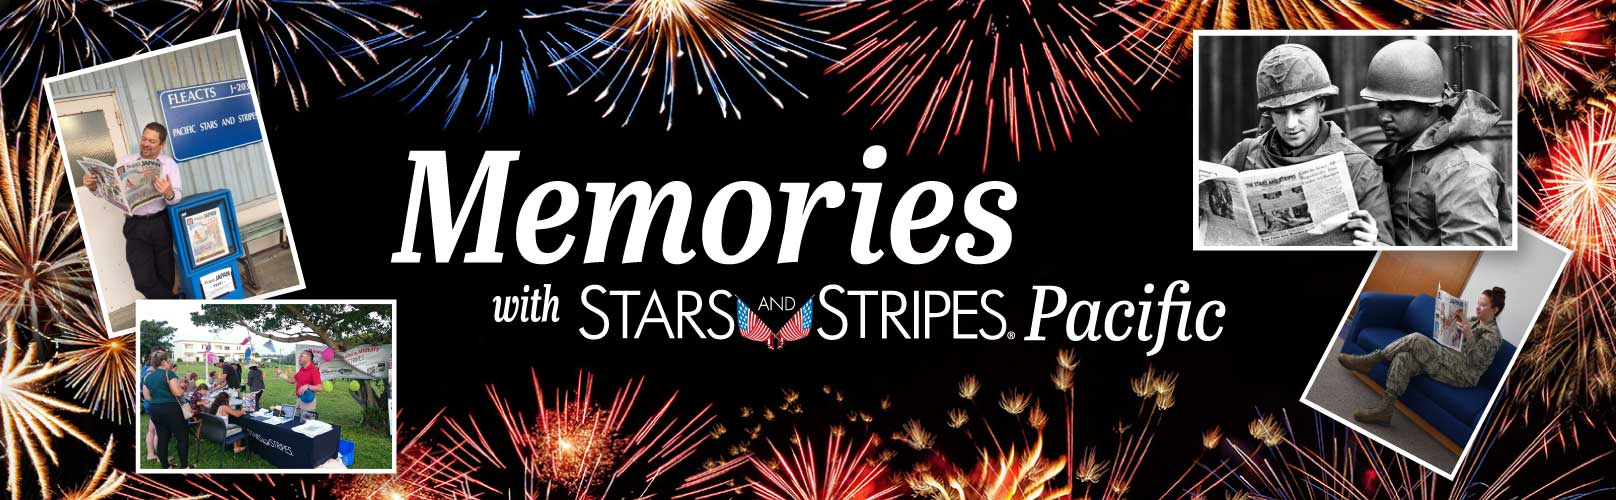 Memories with Stars and Stripes Pacific